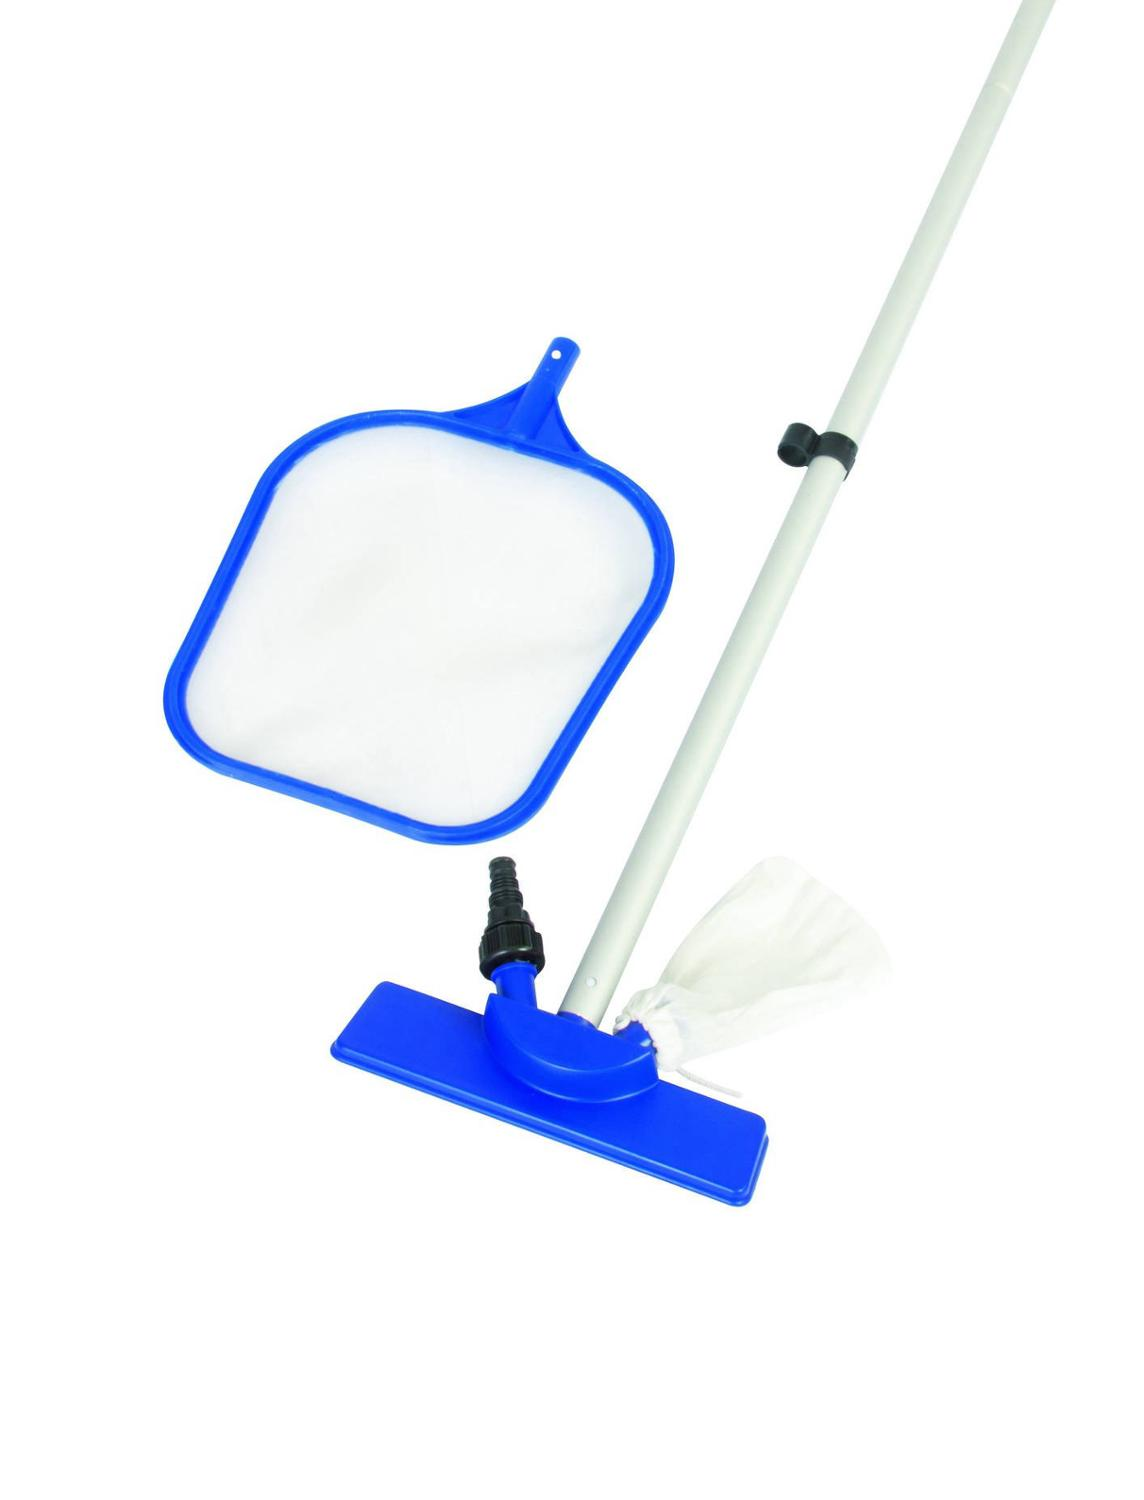 Set For Water In The Pool Care: Dip Net, Brush For Cleaning Bottom And Walls, подключаемая To Garden Hose, Handle 203 Cm